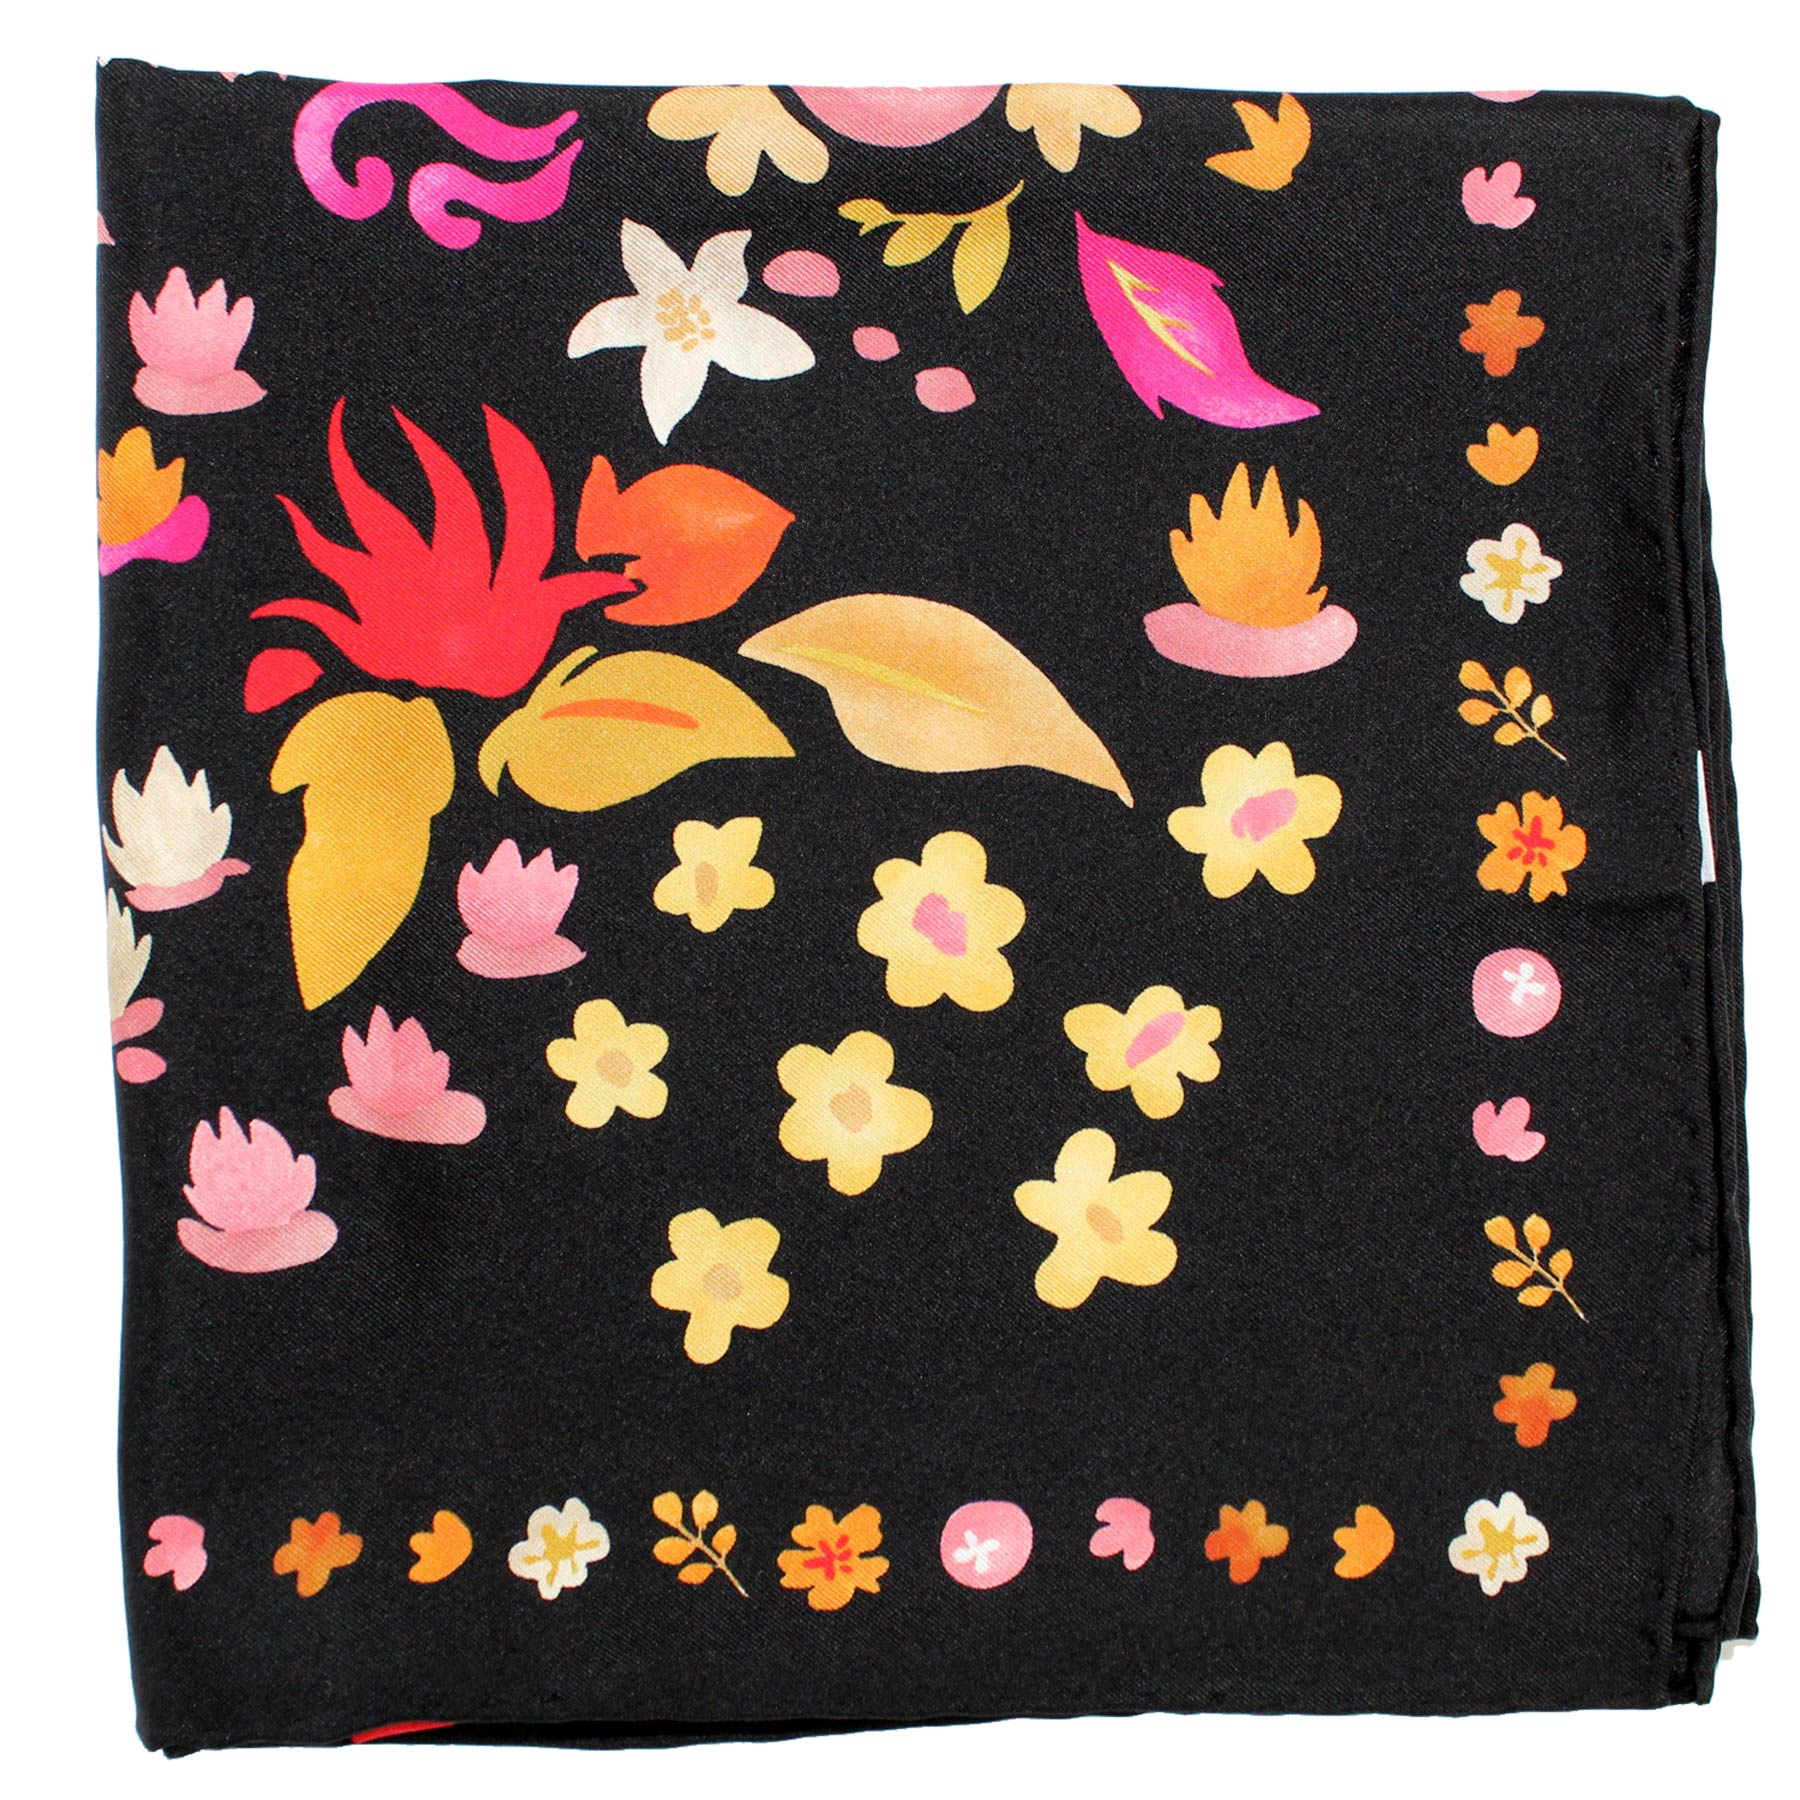 Salvatore Ferragamo Scarf Black Flowers